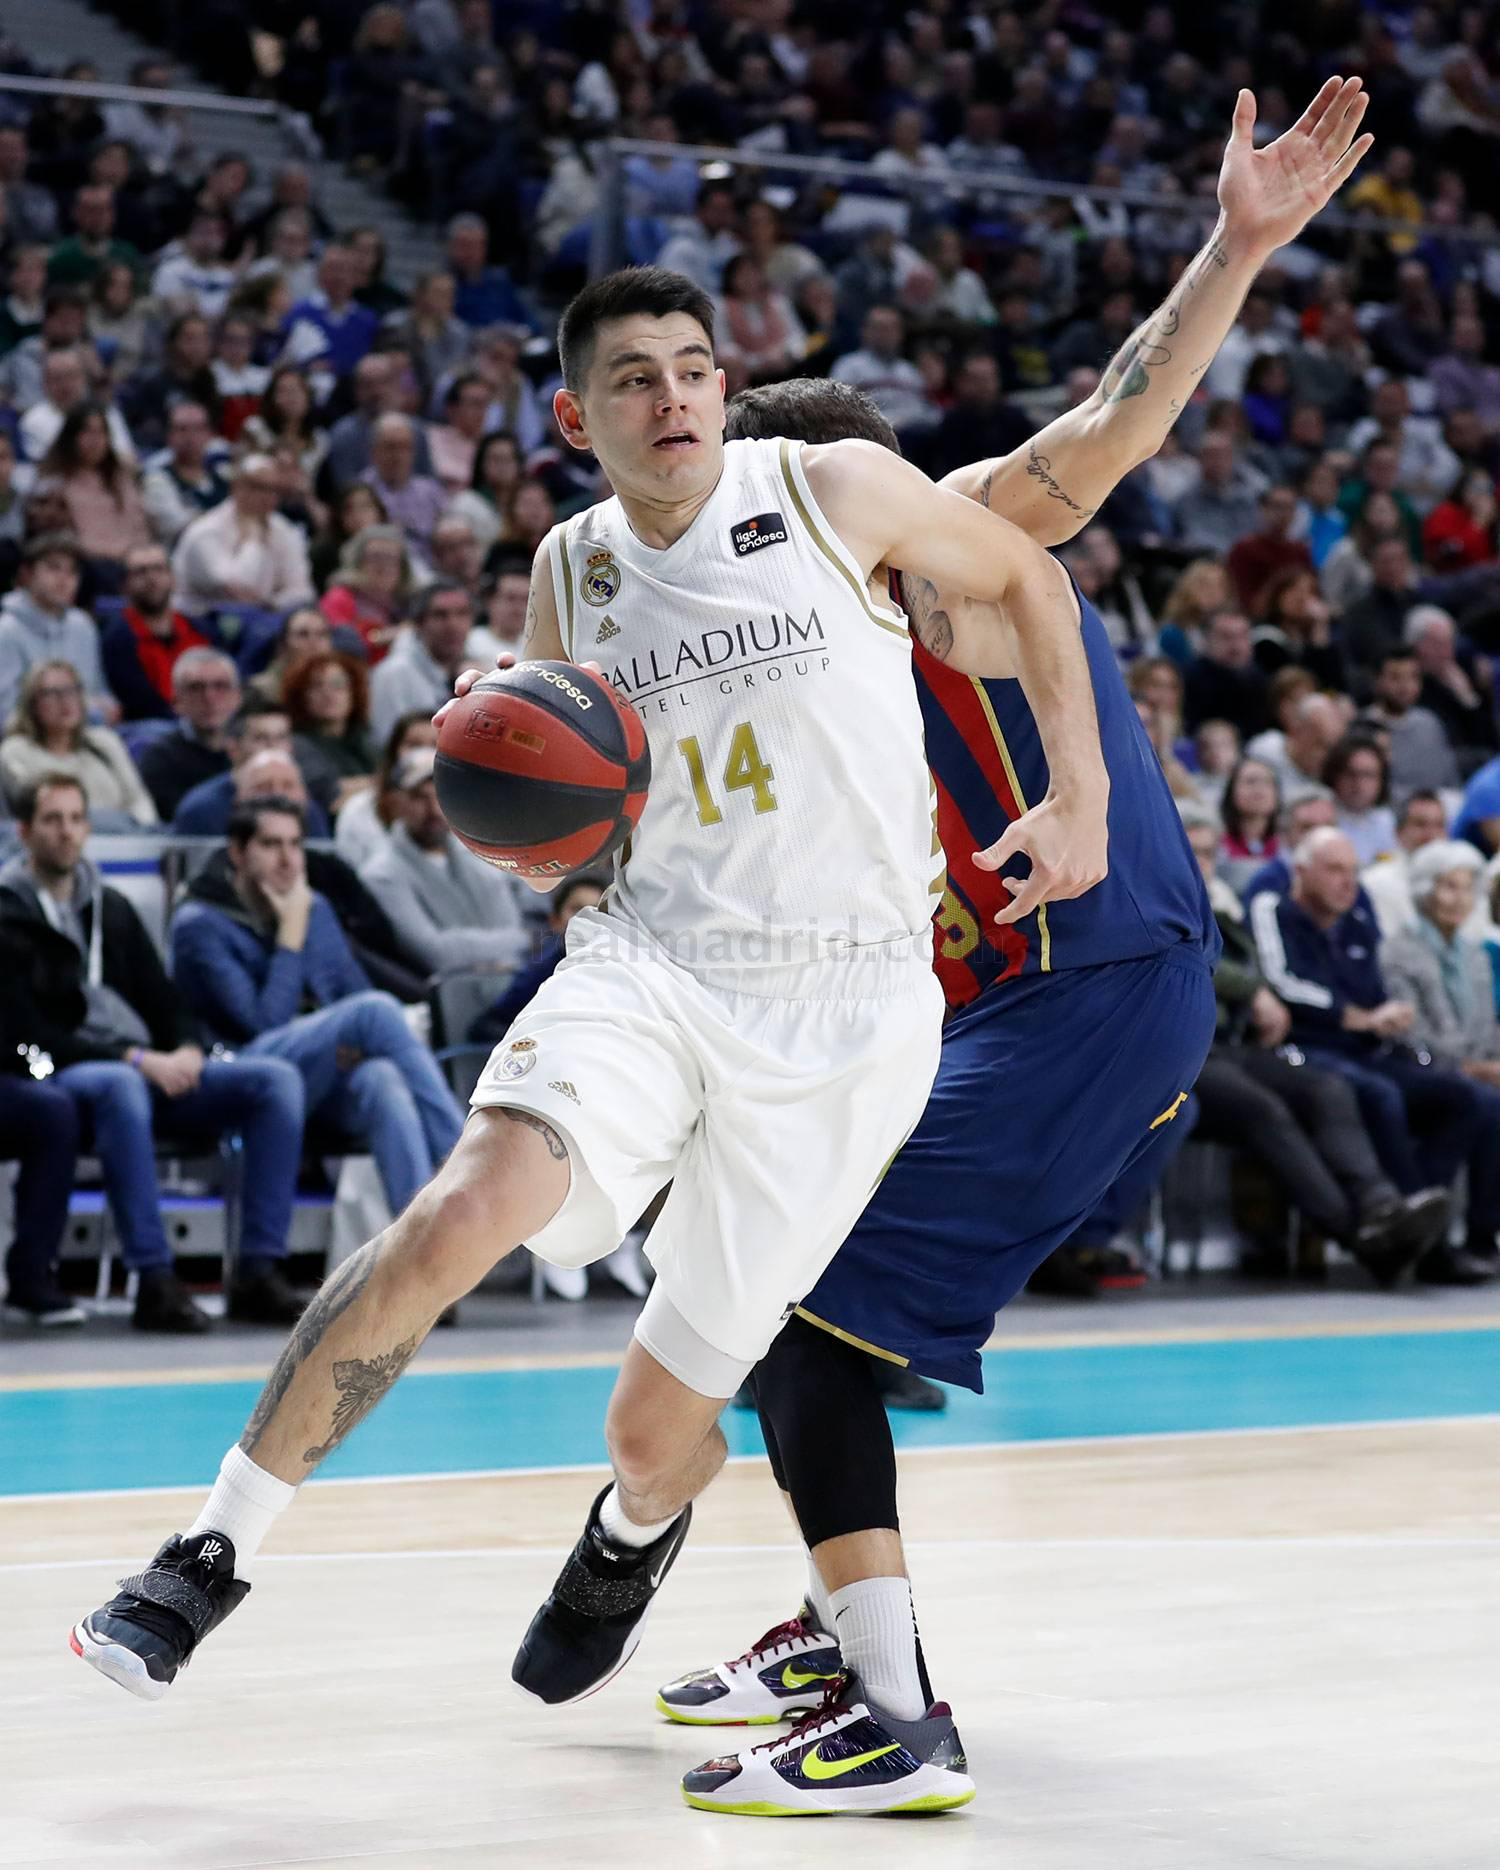 Real Madrid - Real Madrid-Kirolbet Baskonia - 19-01-2020